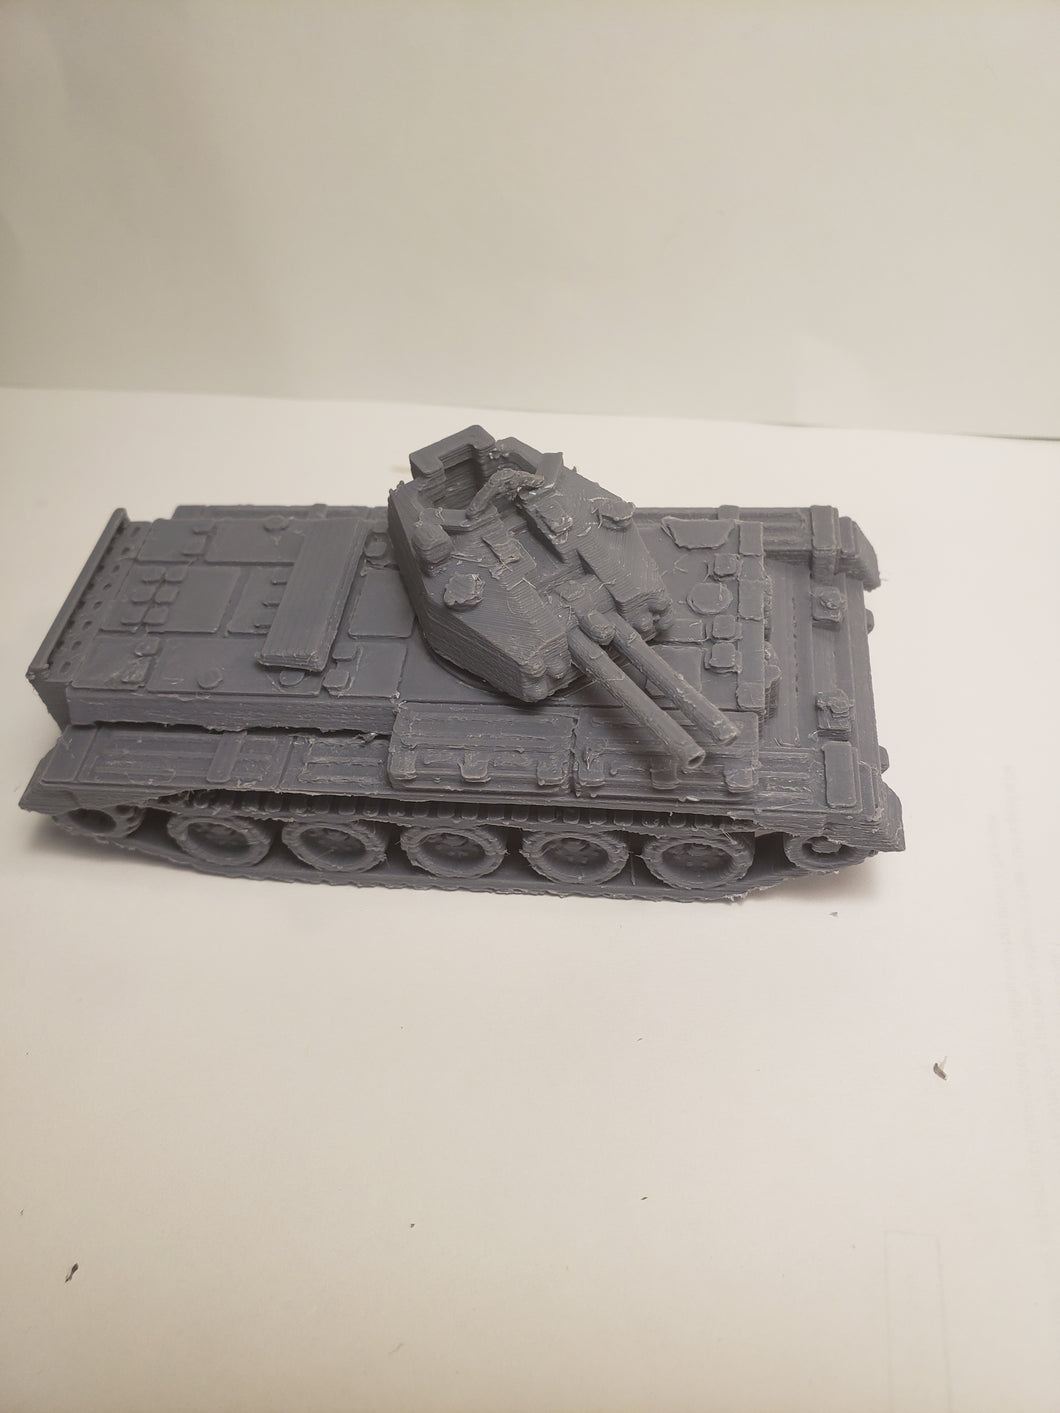 1/200 to 1/35 scale Centaur IV 20mm AA  x2 Scale WWII Model Tank